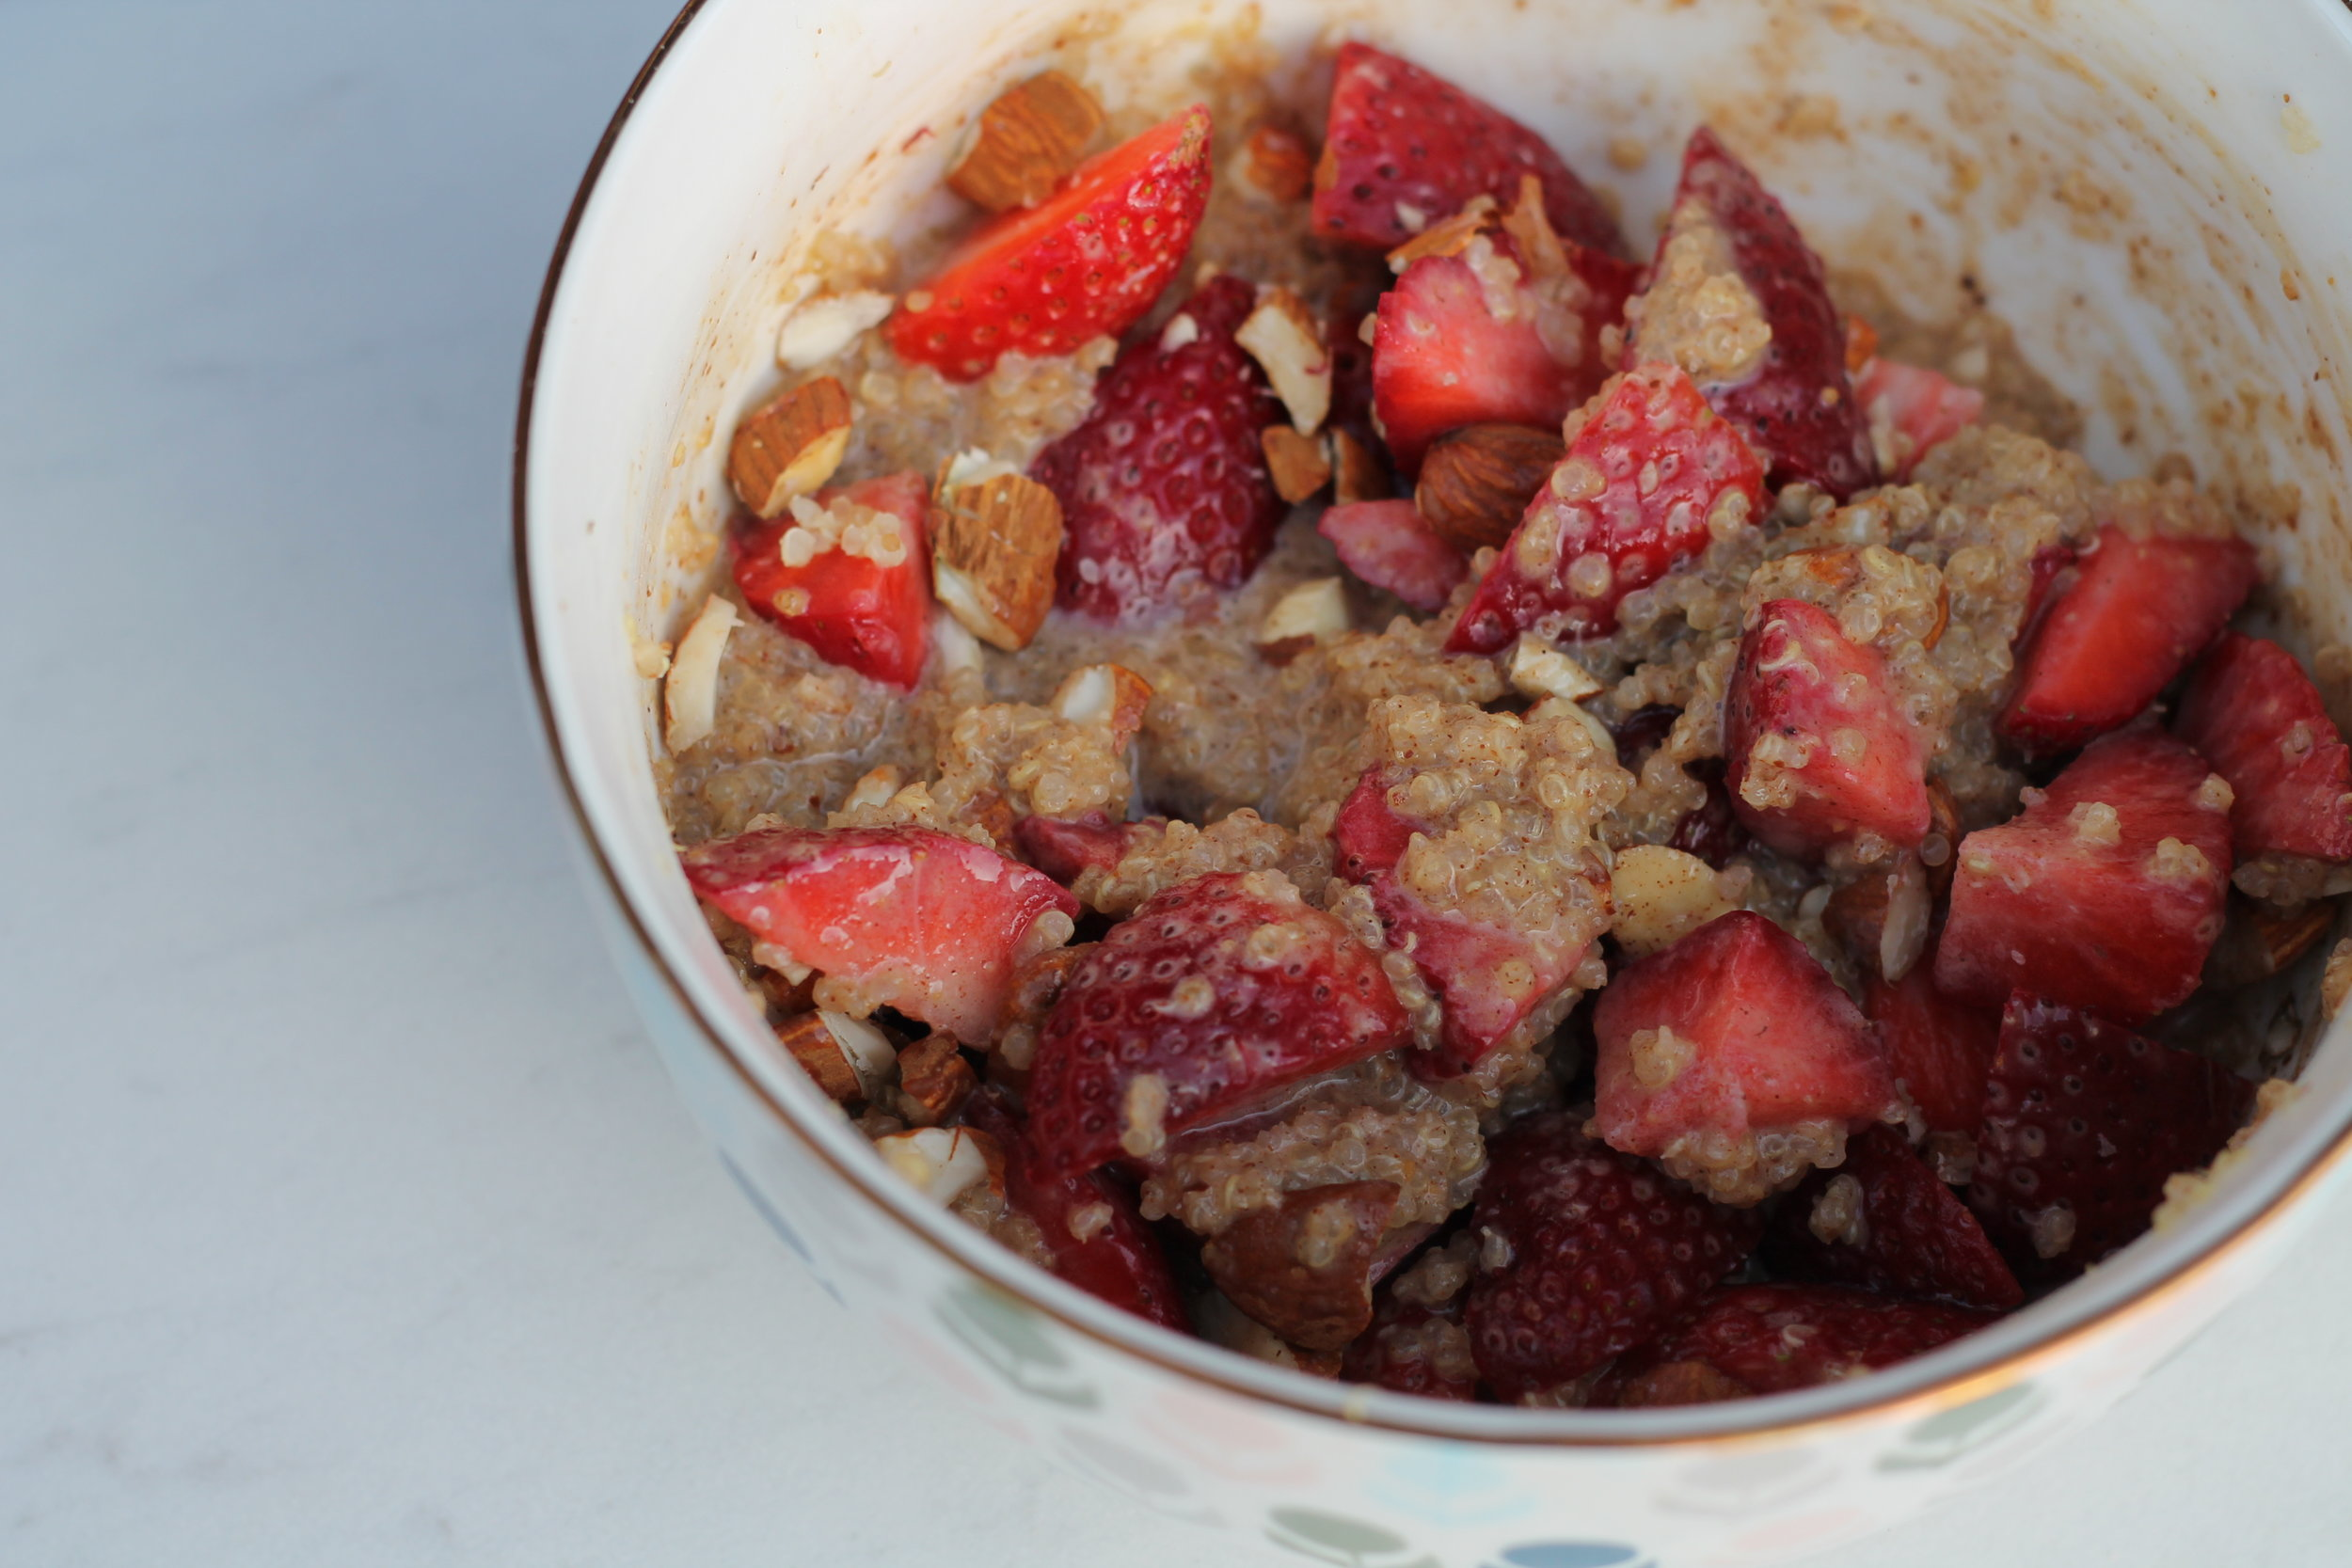 Strawberry Quinoa Breakfast Bowl.JPG